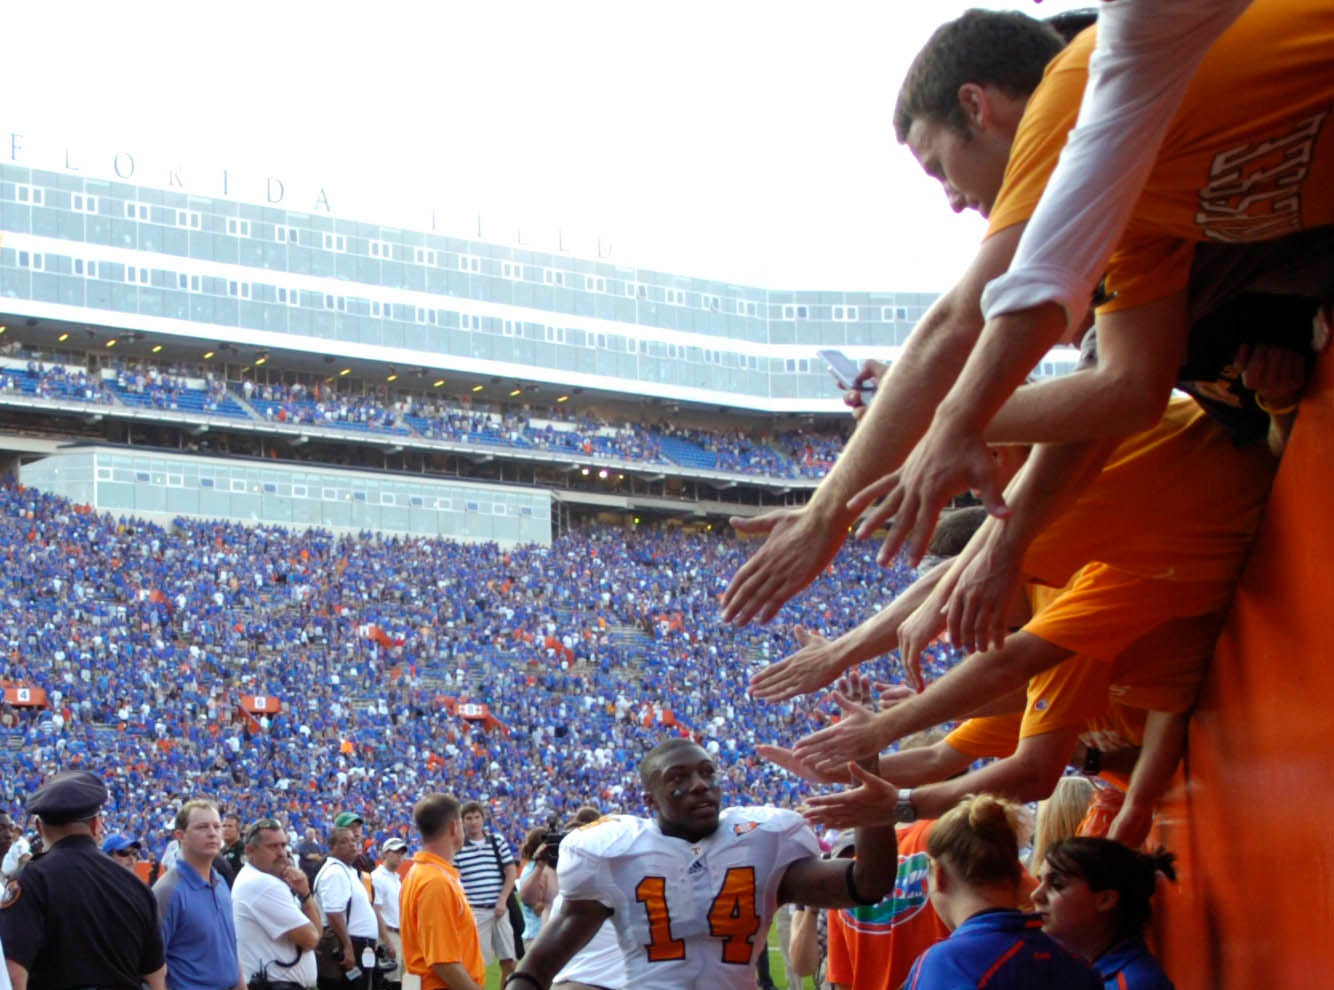 Tennessee cornerback Eric Berry (14) greets fans as he leaves the field after the 23-13 loss to Florida on Saturday, Sept. 19, 2009 at Ben Hill Griffin Stadium in Gainesville, FL.